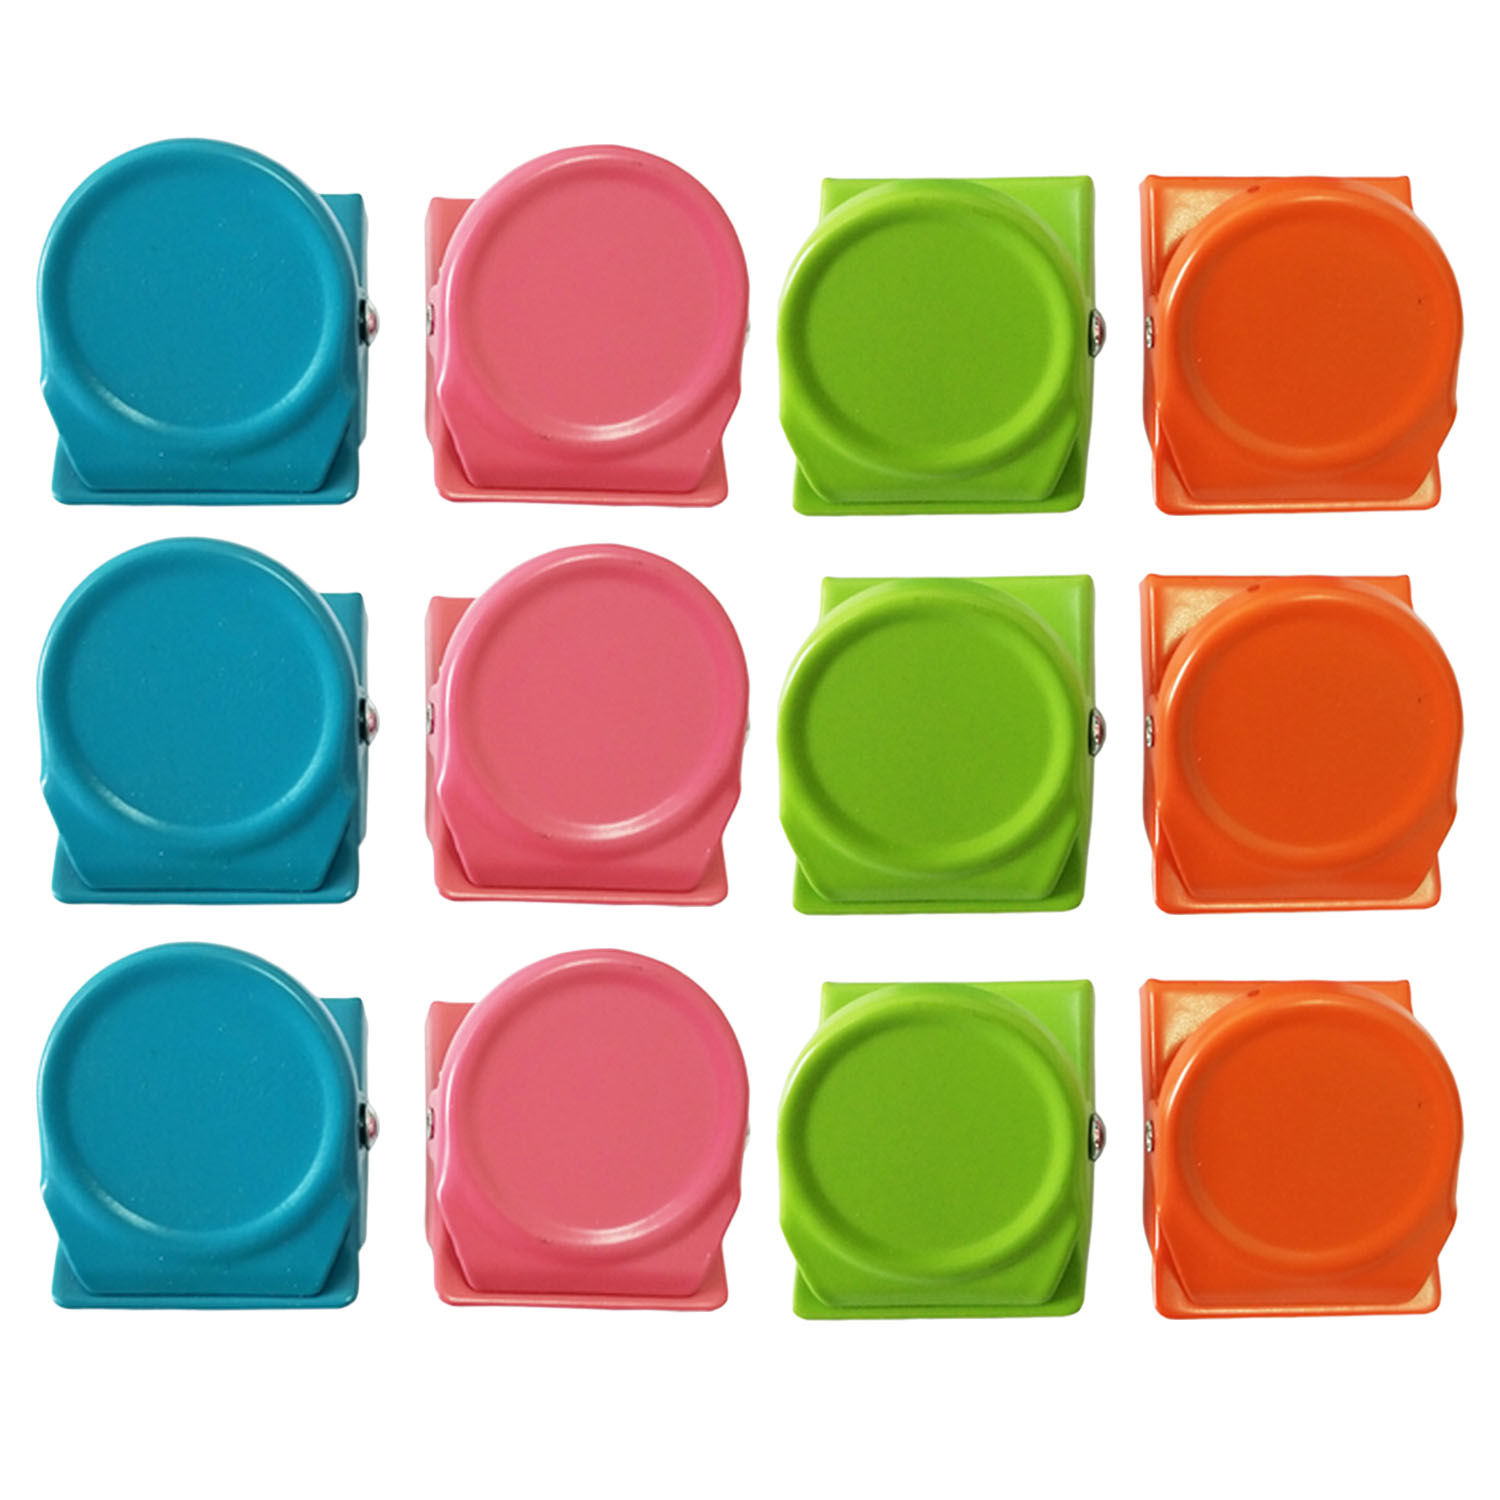 12PCS Assorted Colors Metal Magnet Magnetic Hook Clips For Home Kitchen Office School Pantry Study Studio Christmas Decoration